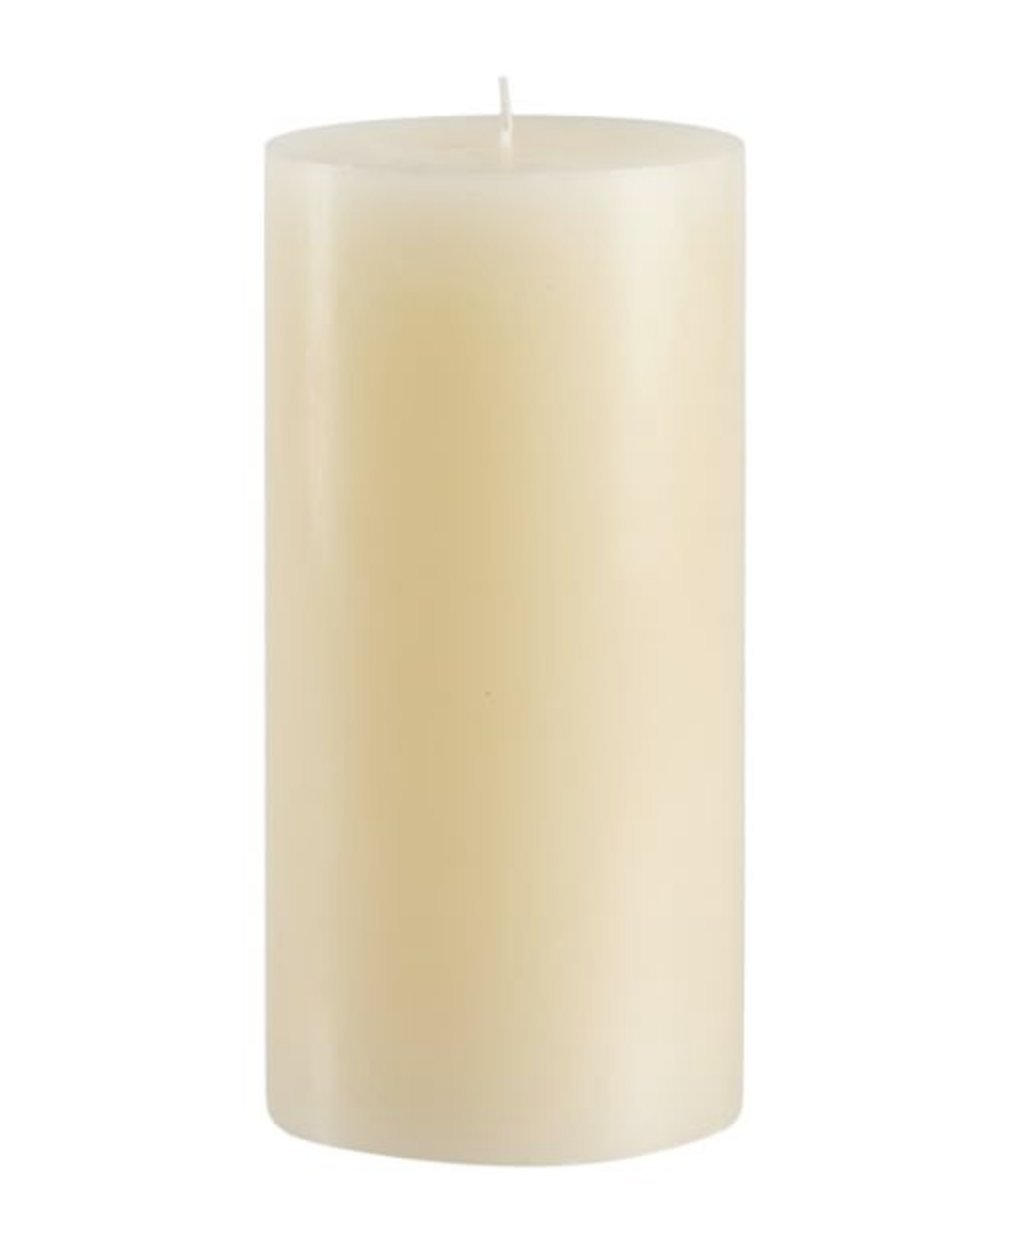 Candles4Less - 4 Inch x 6 Inch Bulk Ivory Pillar Candles (Set of 3) Unscented Solid Color Hand Made with Cotton Wicks, Dripless Made in USA